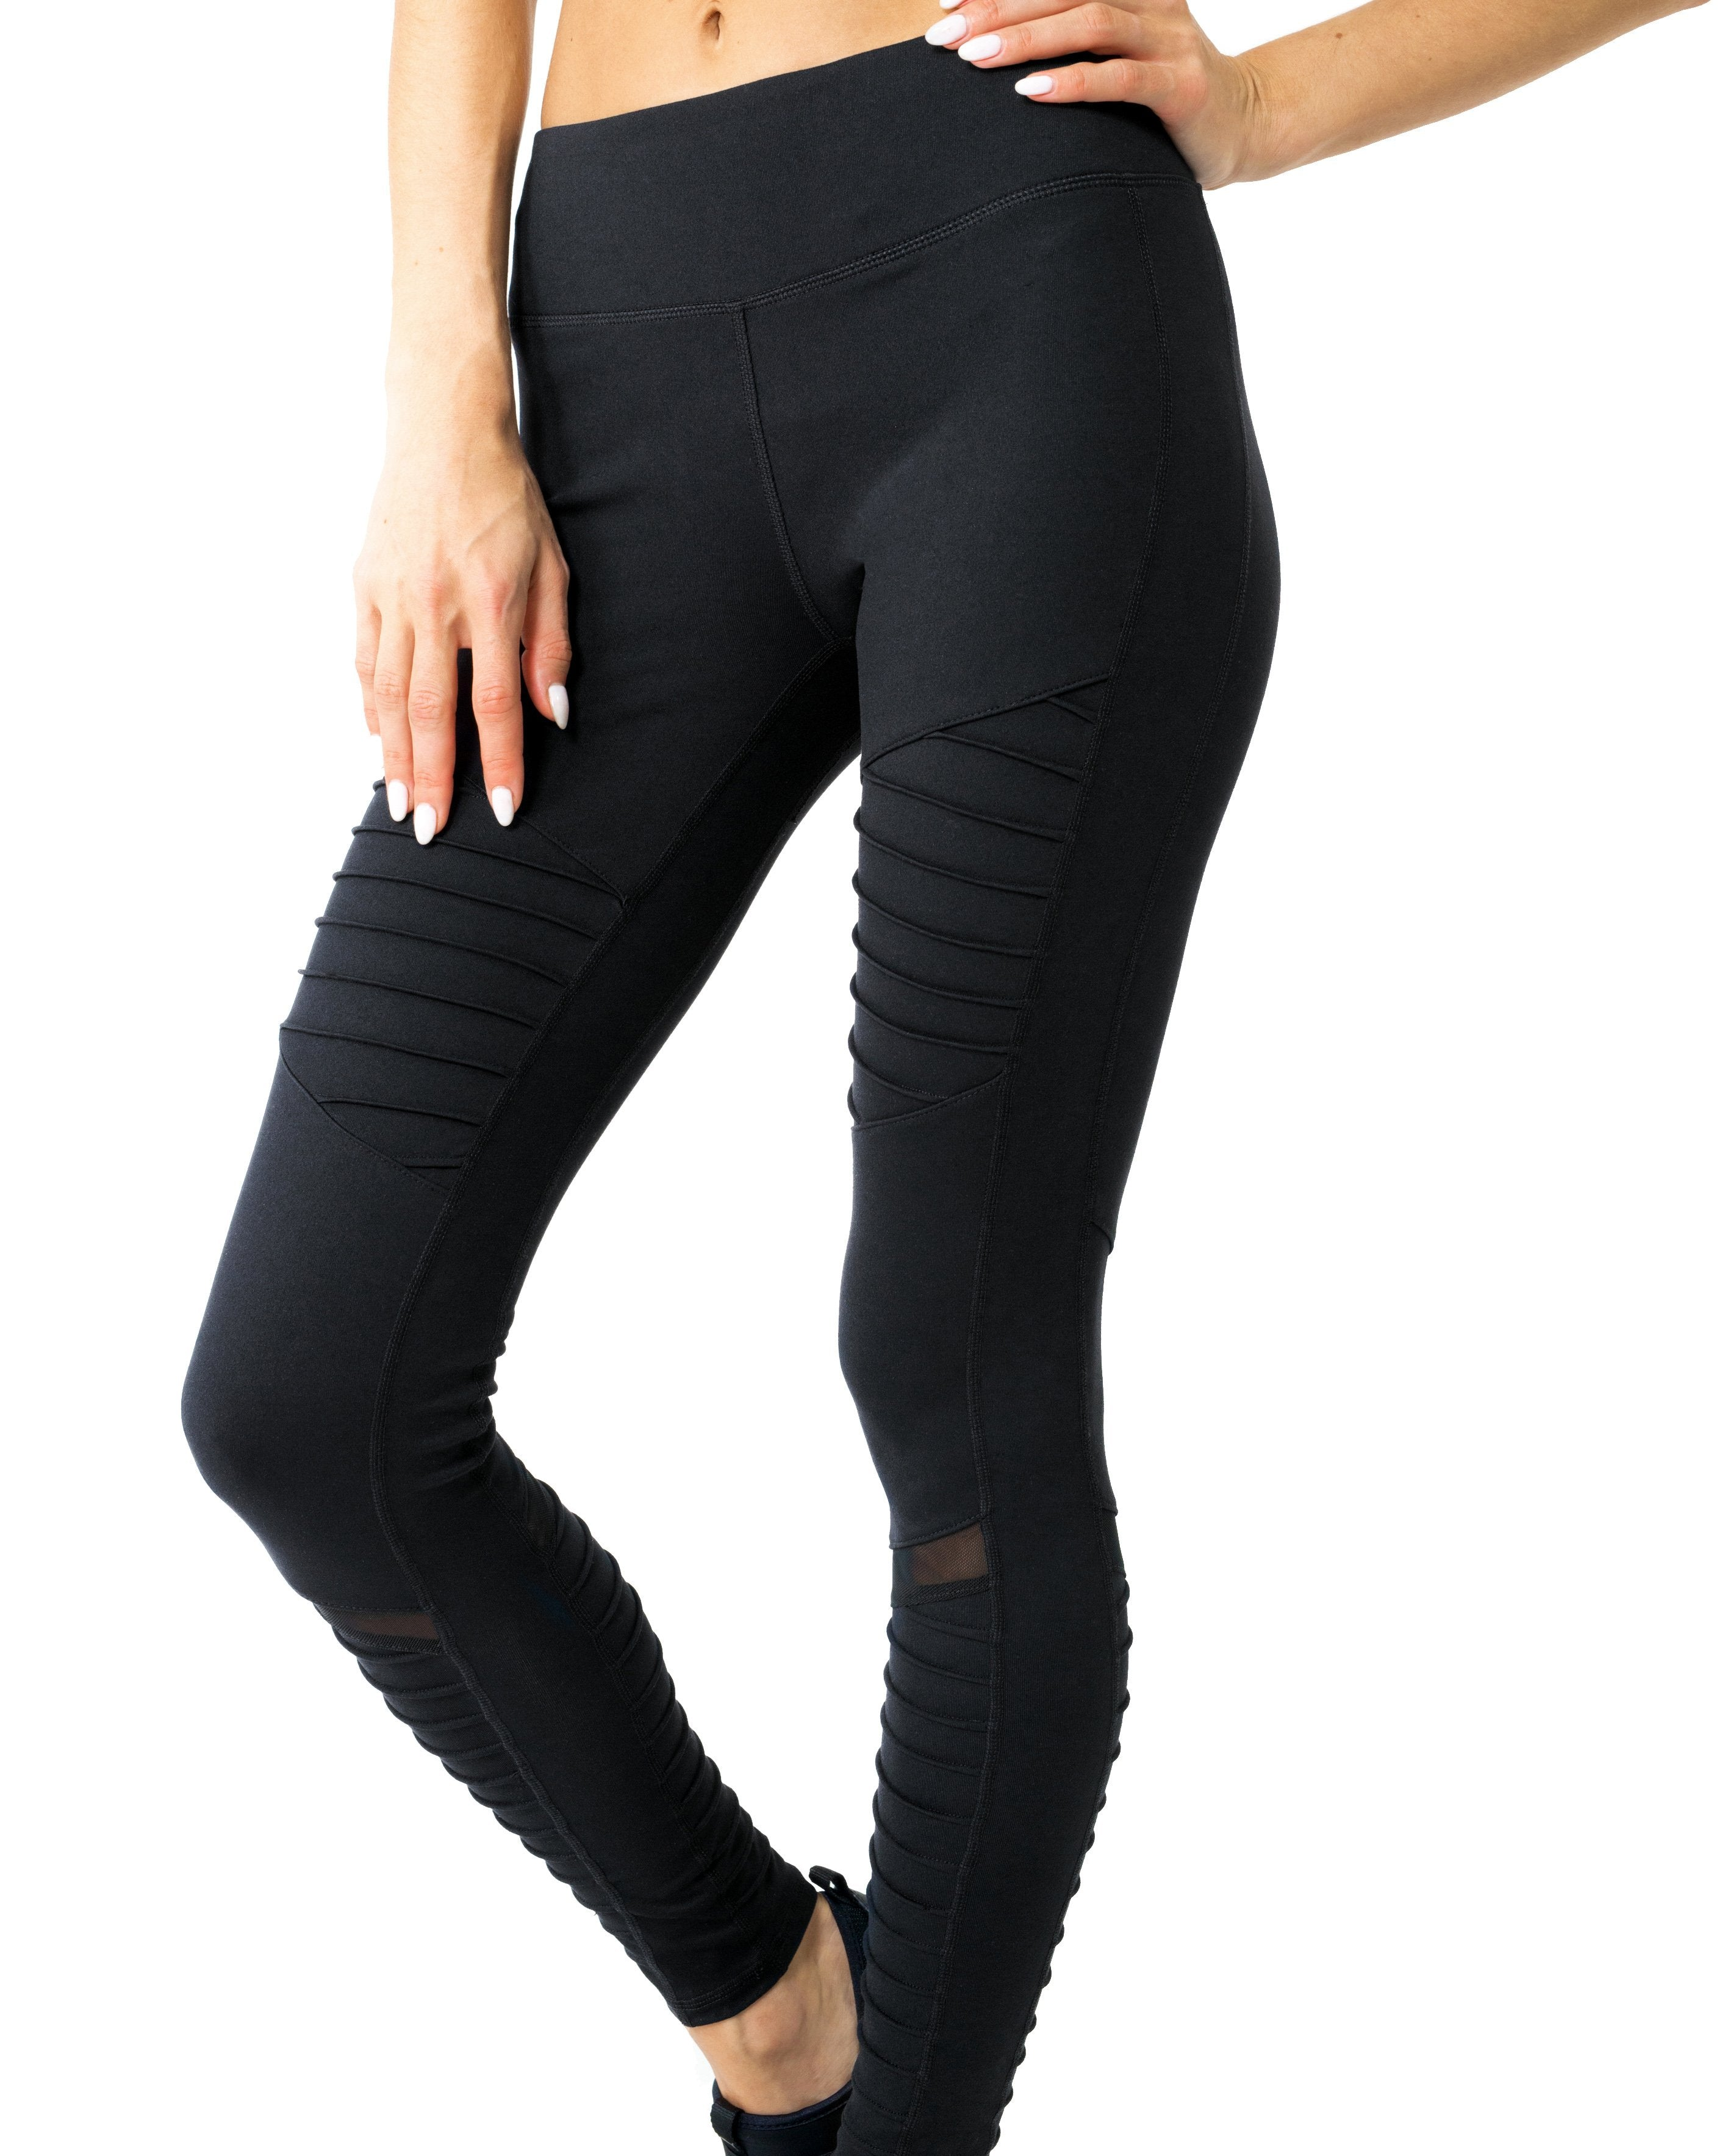 Athletique Low-Waisted Ribbed Leggings With Hidden Pocket and Mesh Panels - Black